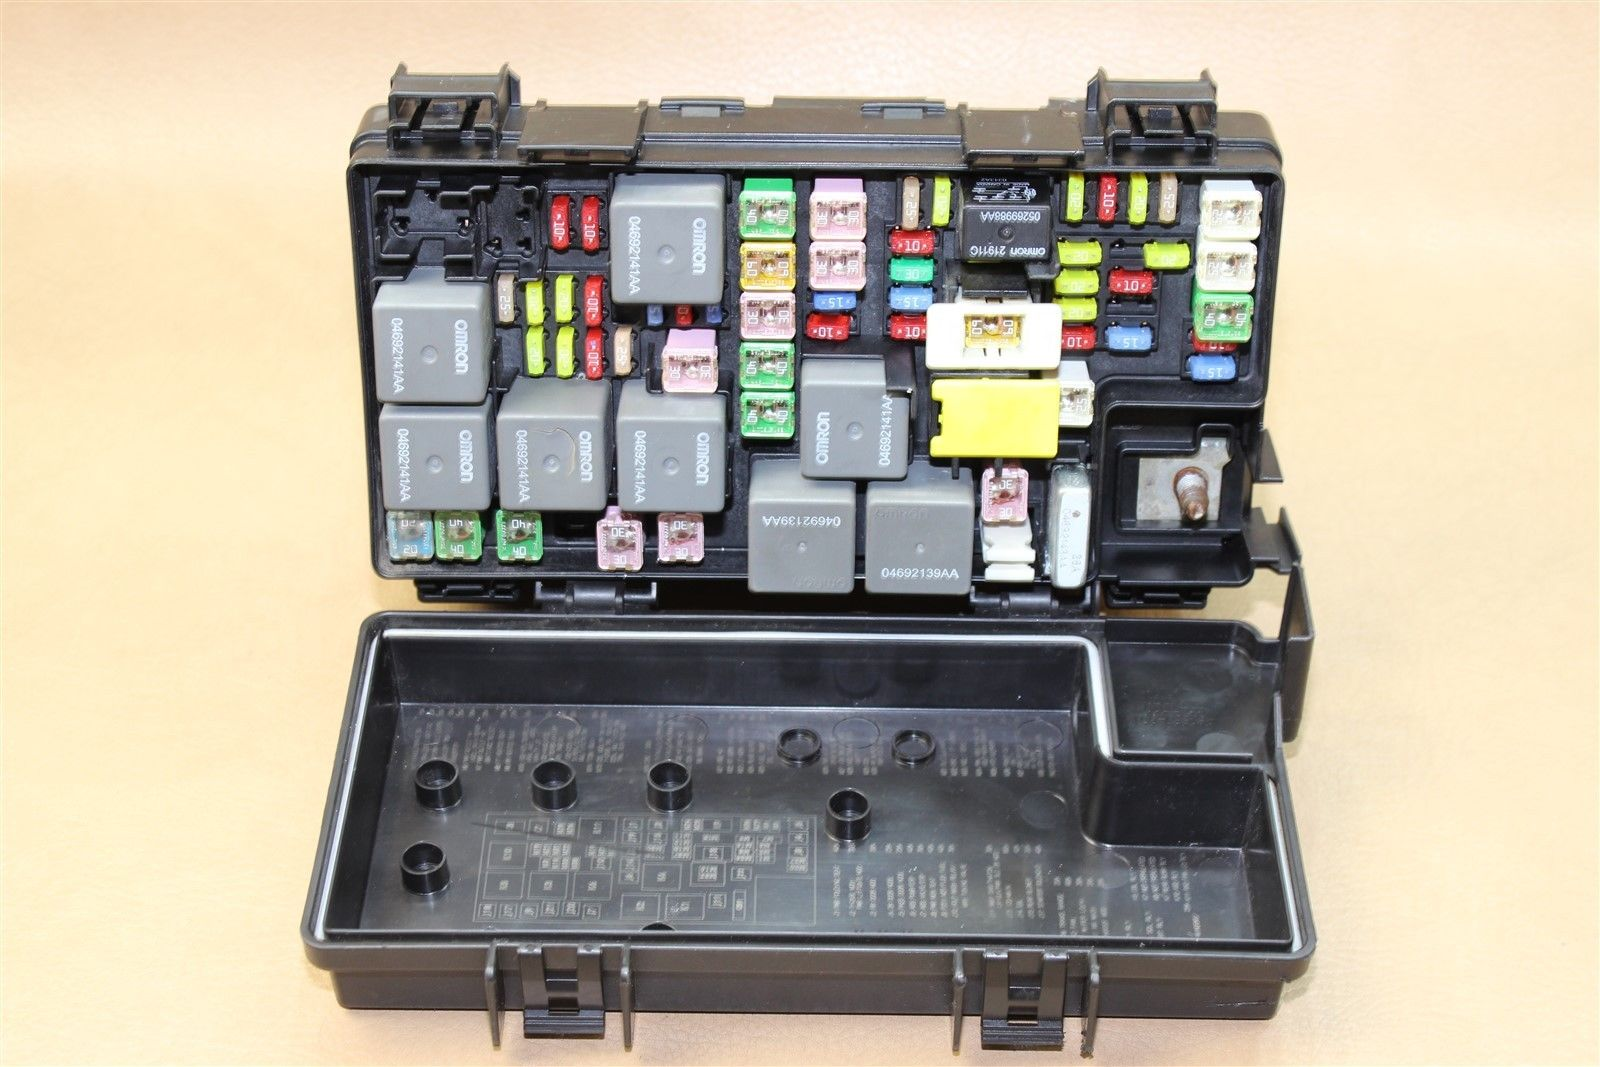 08 09 Journey Caravan Tc Tipm Temic Integrated Fuse Box Module Journeys 04692302ac Oem Does Not